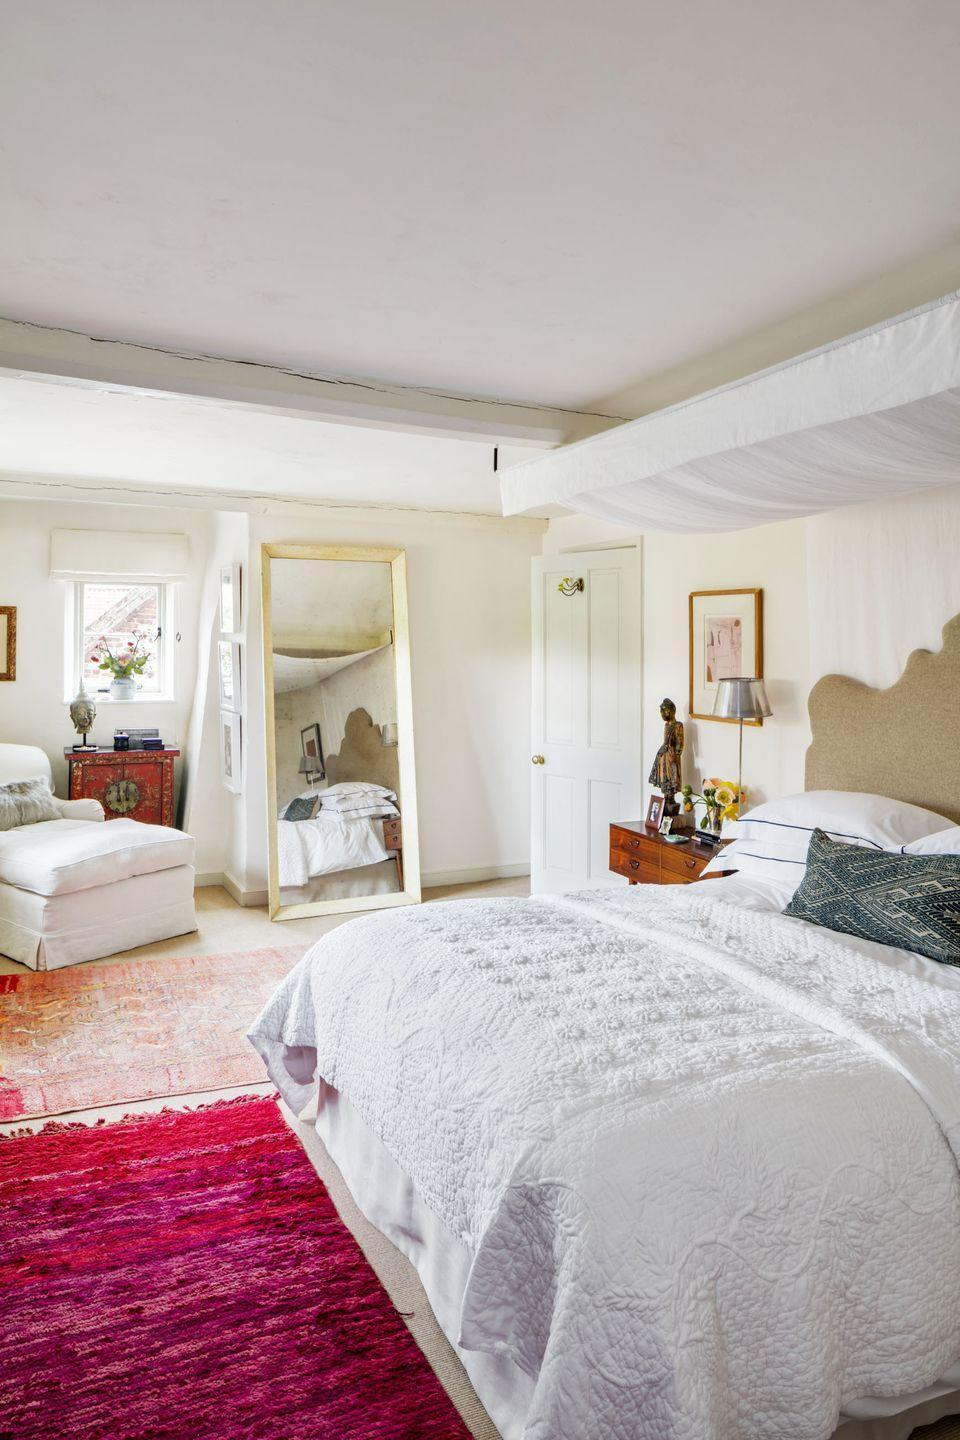 """<p>""""I wanted a very calm bedroom, so we painted everything in Christophe's White from <a href=""""https://www.francescaspaint.com/index.php"""" rel=""""nofollow noopener"""" target=""""_blank"""" data-ylk=""""slk:Francesca's Paints"""" class=""""link rapid-noclick-resp"""">Francesca's Paints</a>. I have always used her eco-friendly lime washes so the old walls of our house can breathe. Then I added a very bright raspberry old Berber rug we brought back from Morocco, which is such a joy. I can't resist colour.""""</p>"""